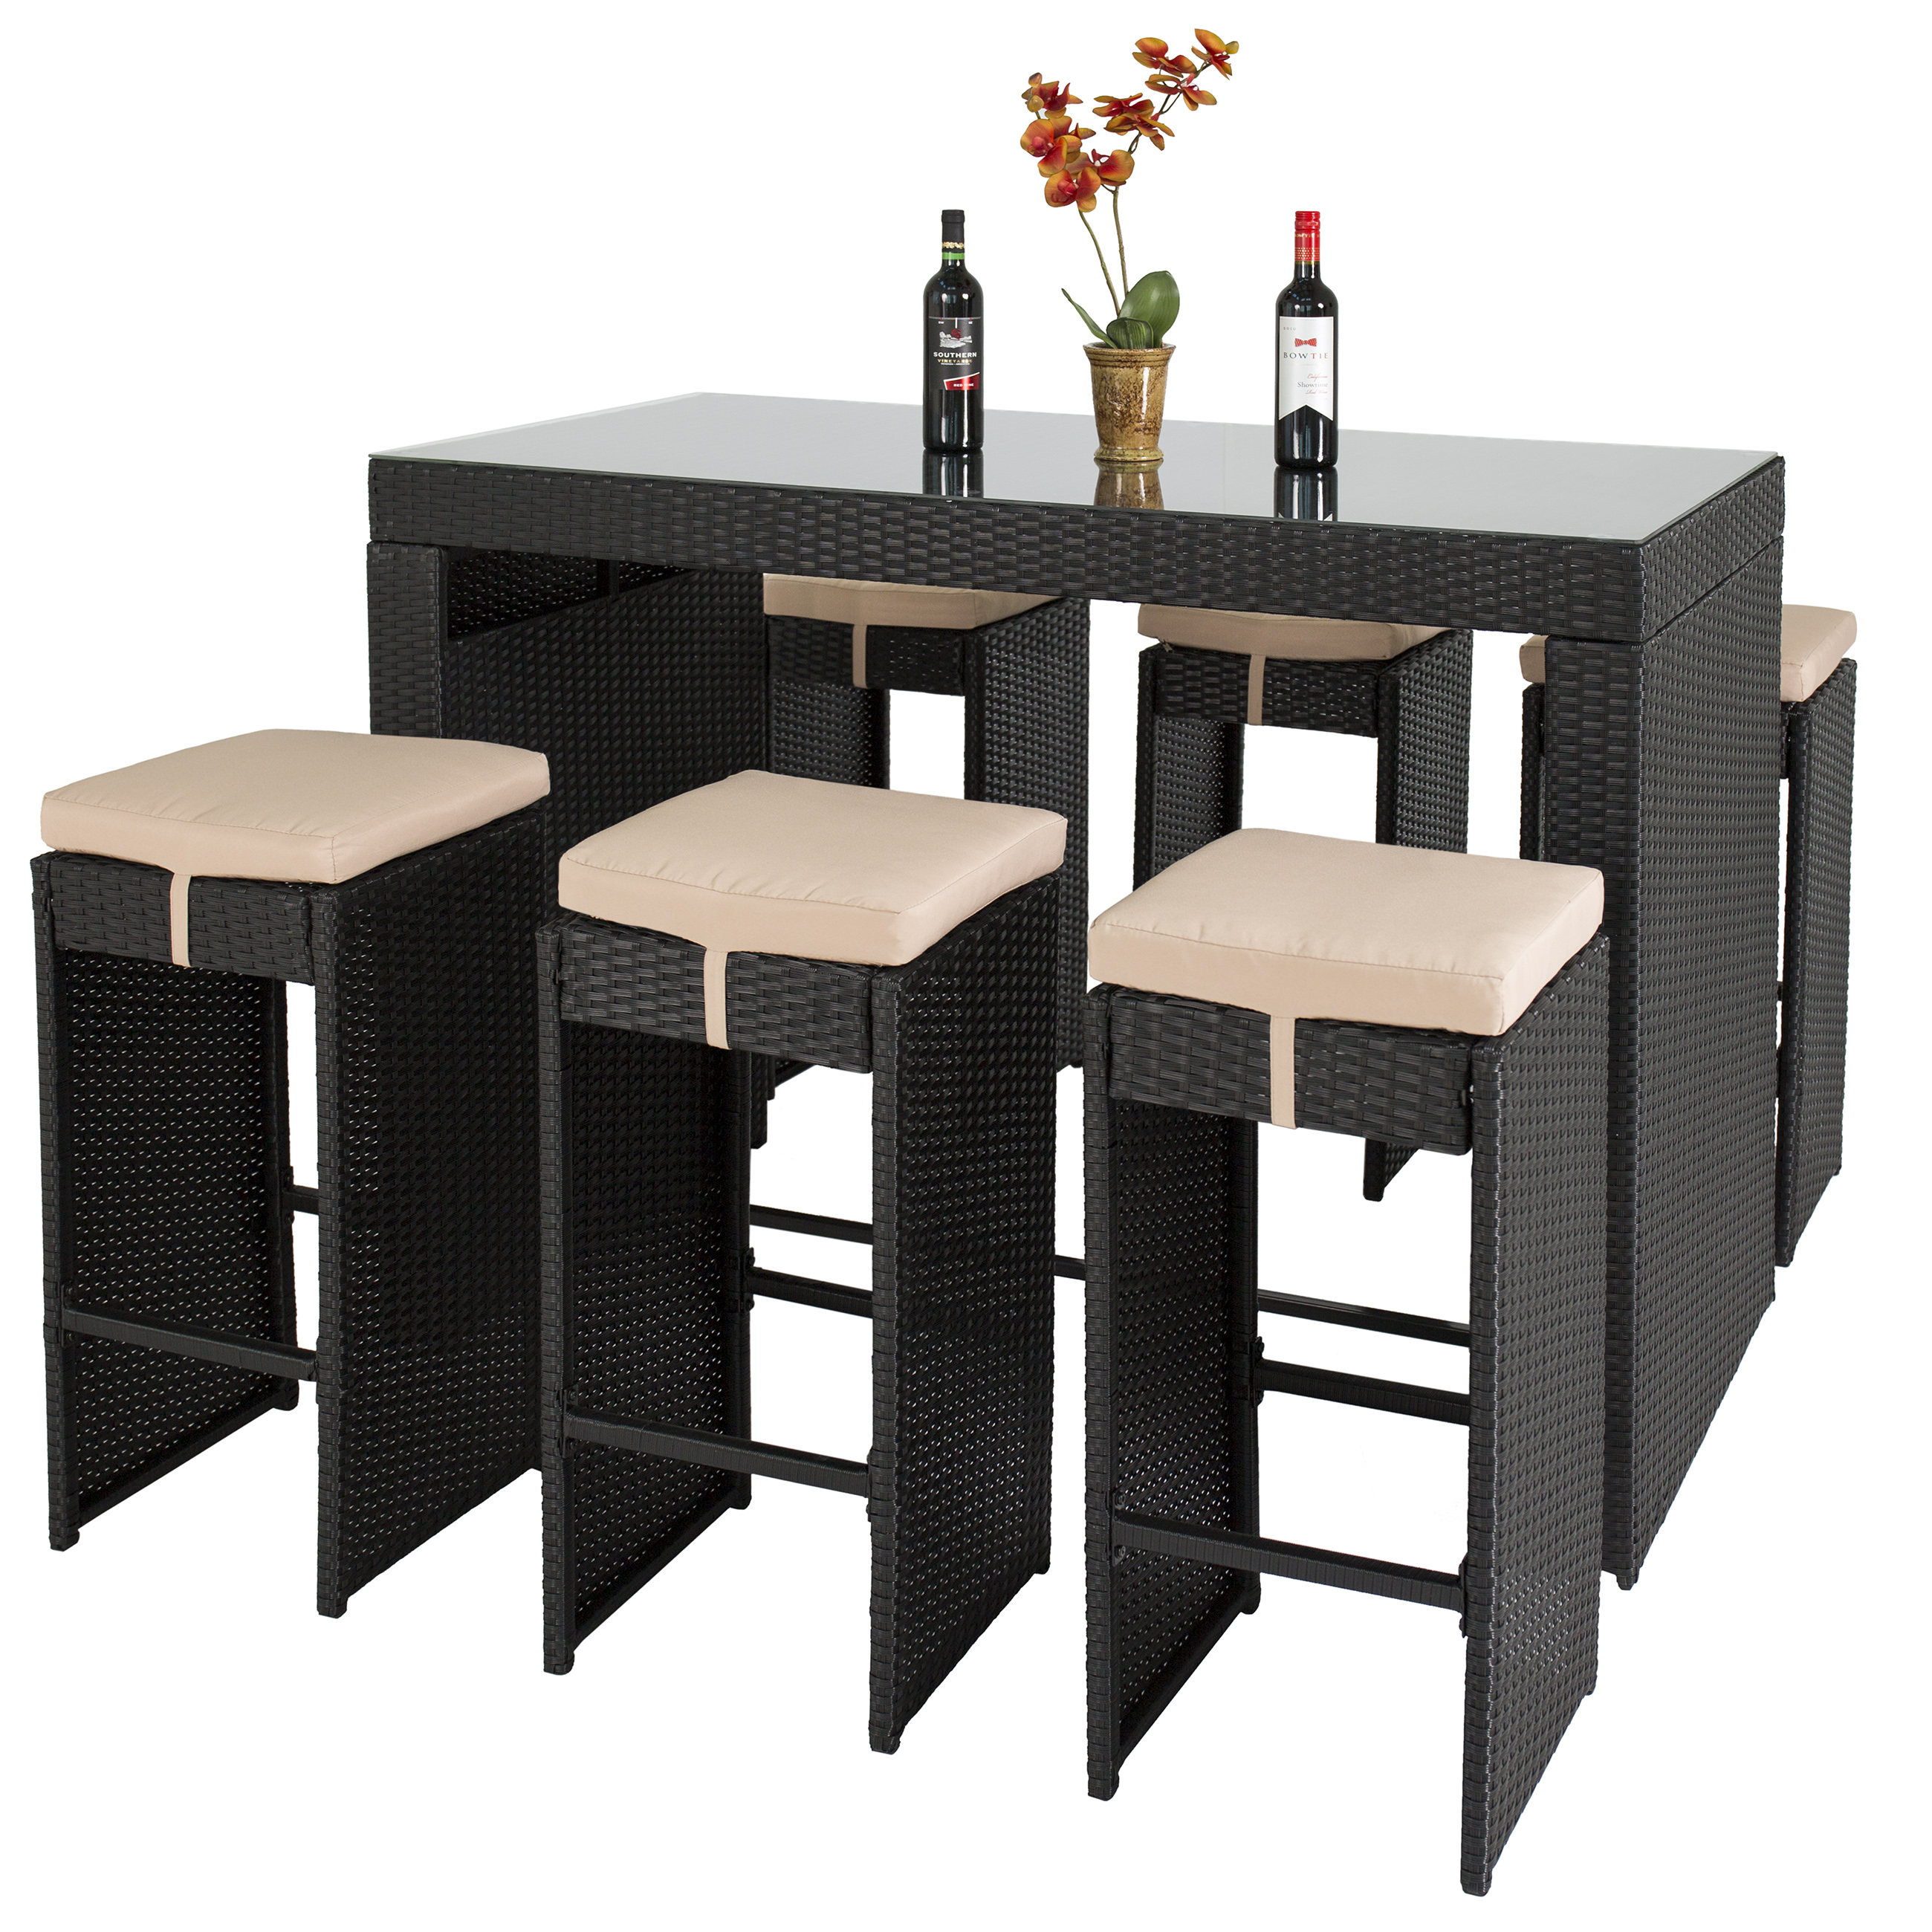 Outside Bar Furniture Home Design Inspiration Ideas and